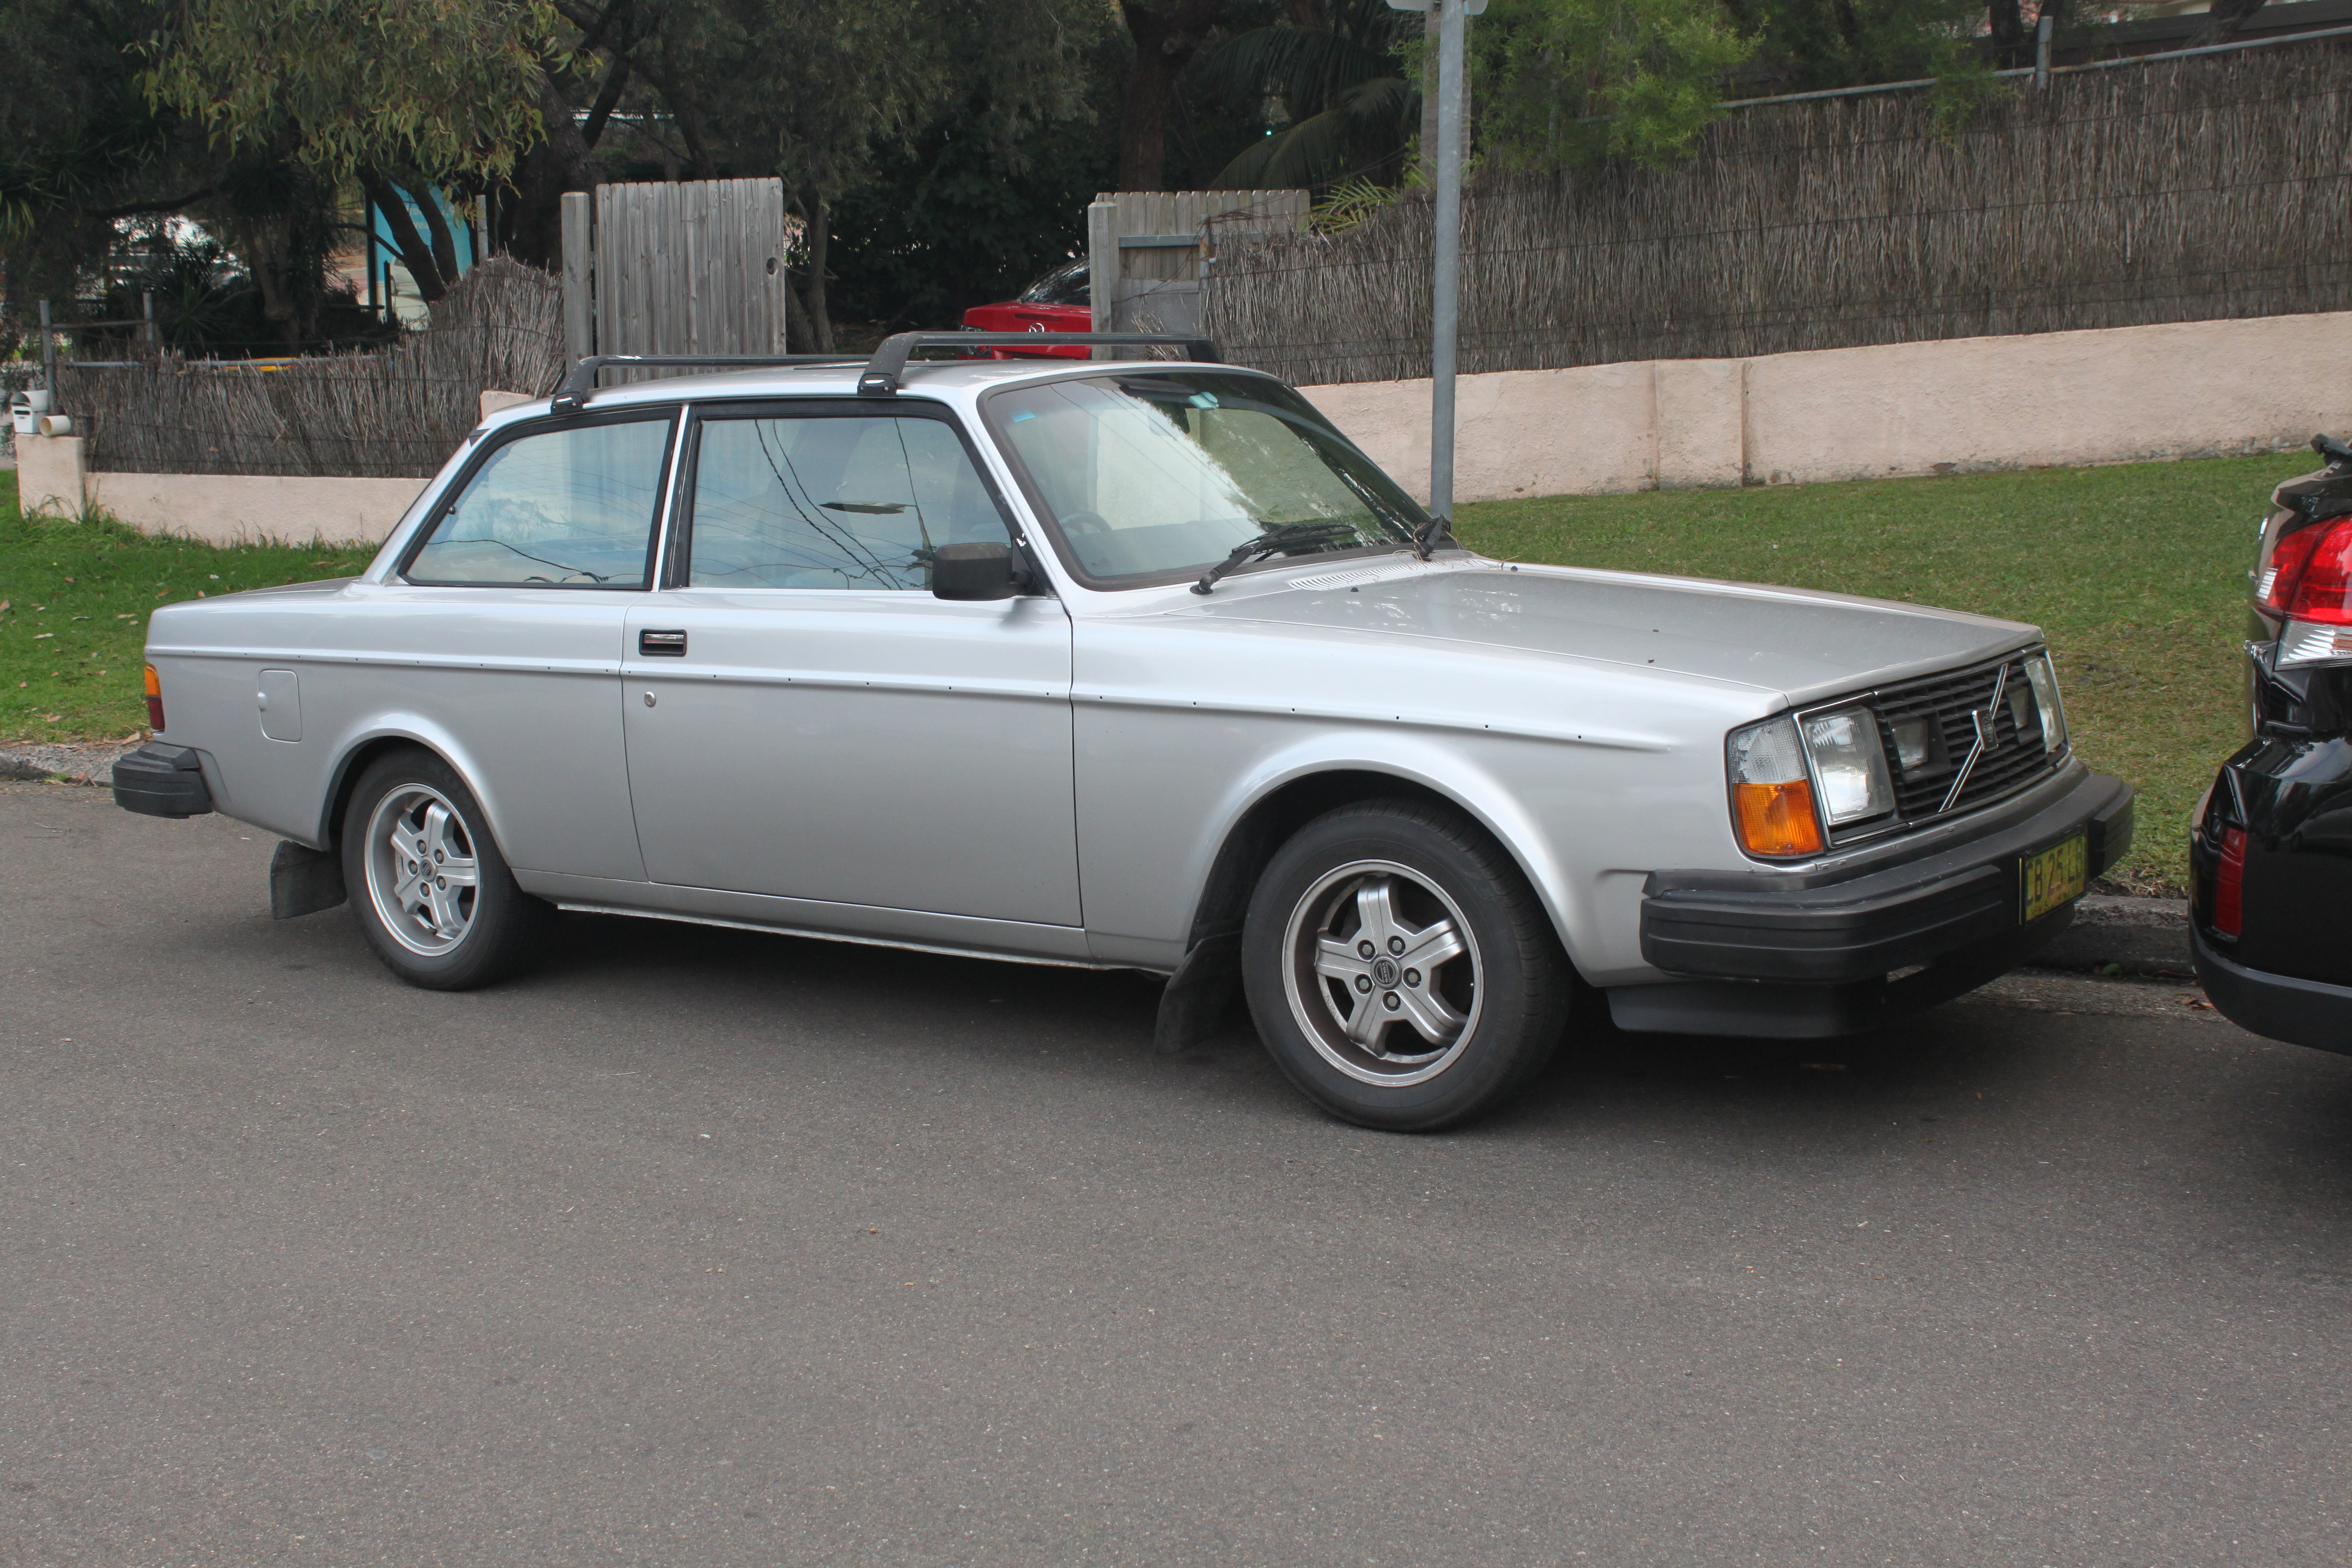 File:1979 Volvo 242 GT 2-door sedan (18641912538).jpg & File:1979 Volvo 242 GT 2-door sedan (18641912538).jpg - Wikimedia ... Pezcame.Com